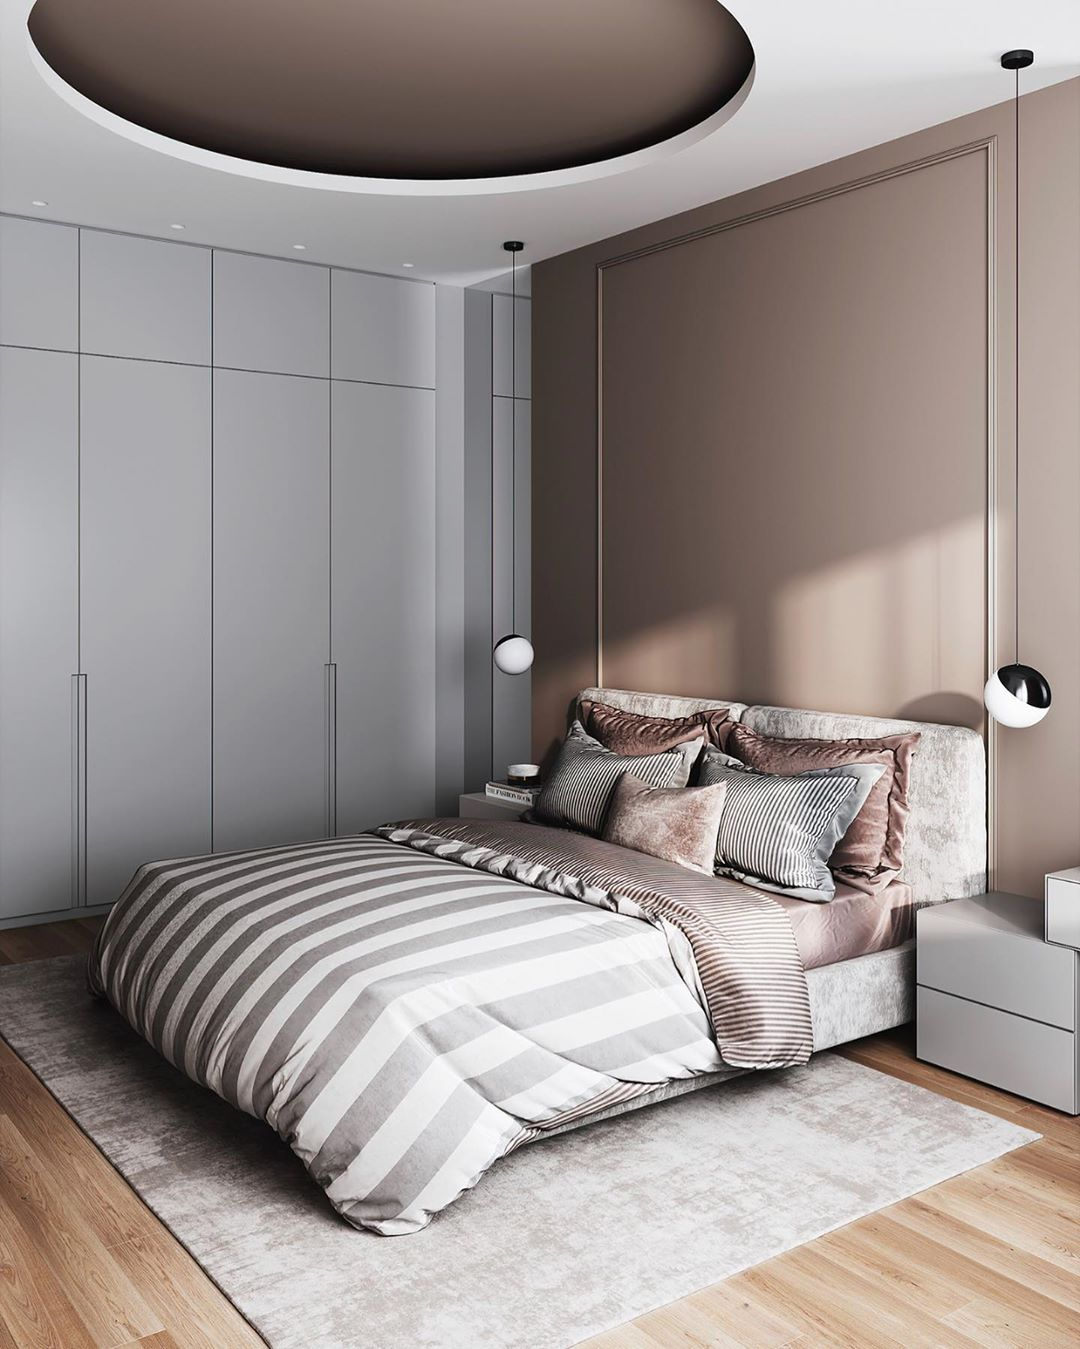 bedroom interior Decoration , best Quality bedroom decoration , bedroom design, bedroom interior , bedroom interior ideas